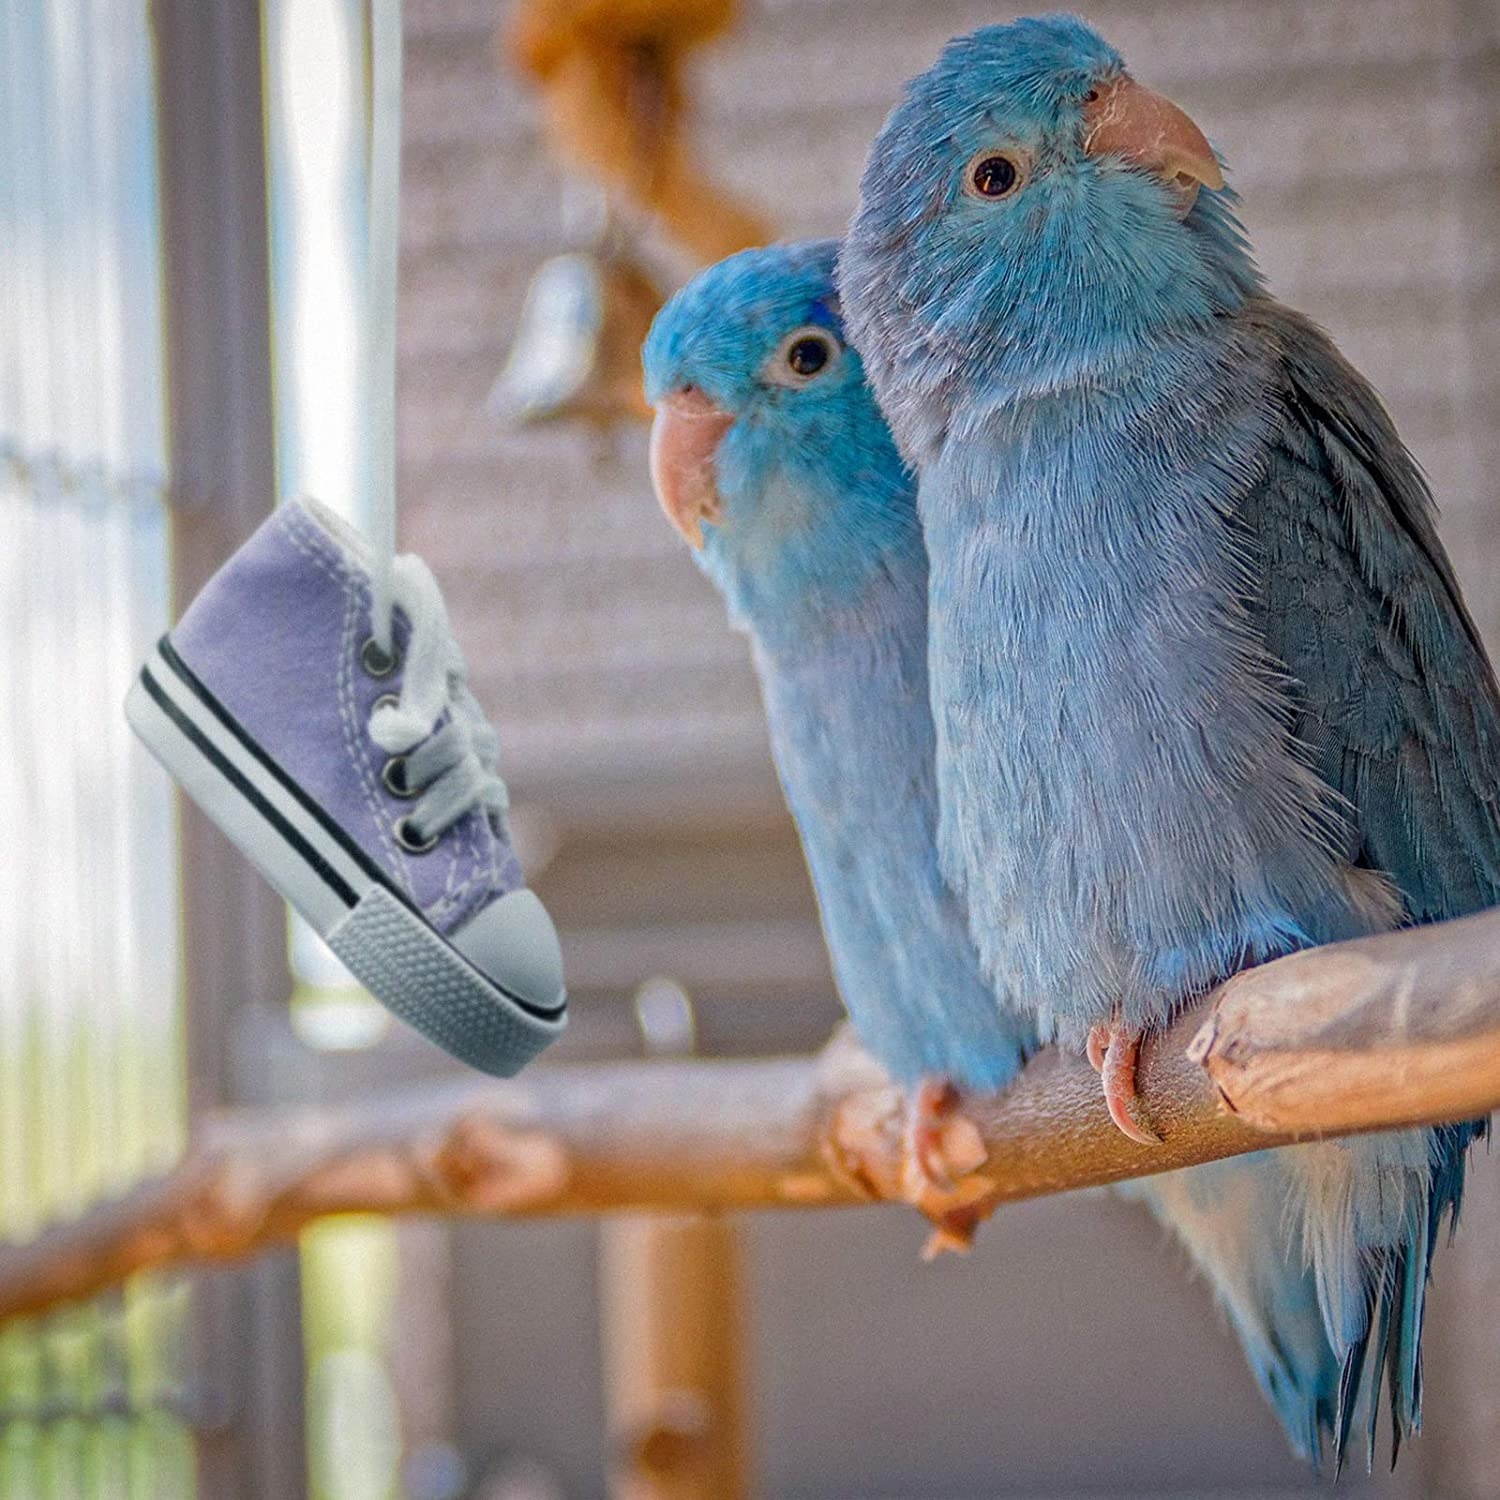 Birds playing with the mini converse sneaker toy